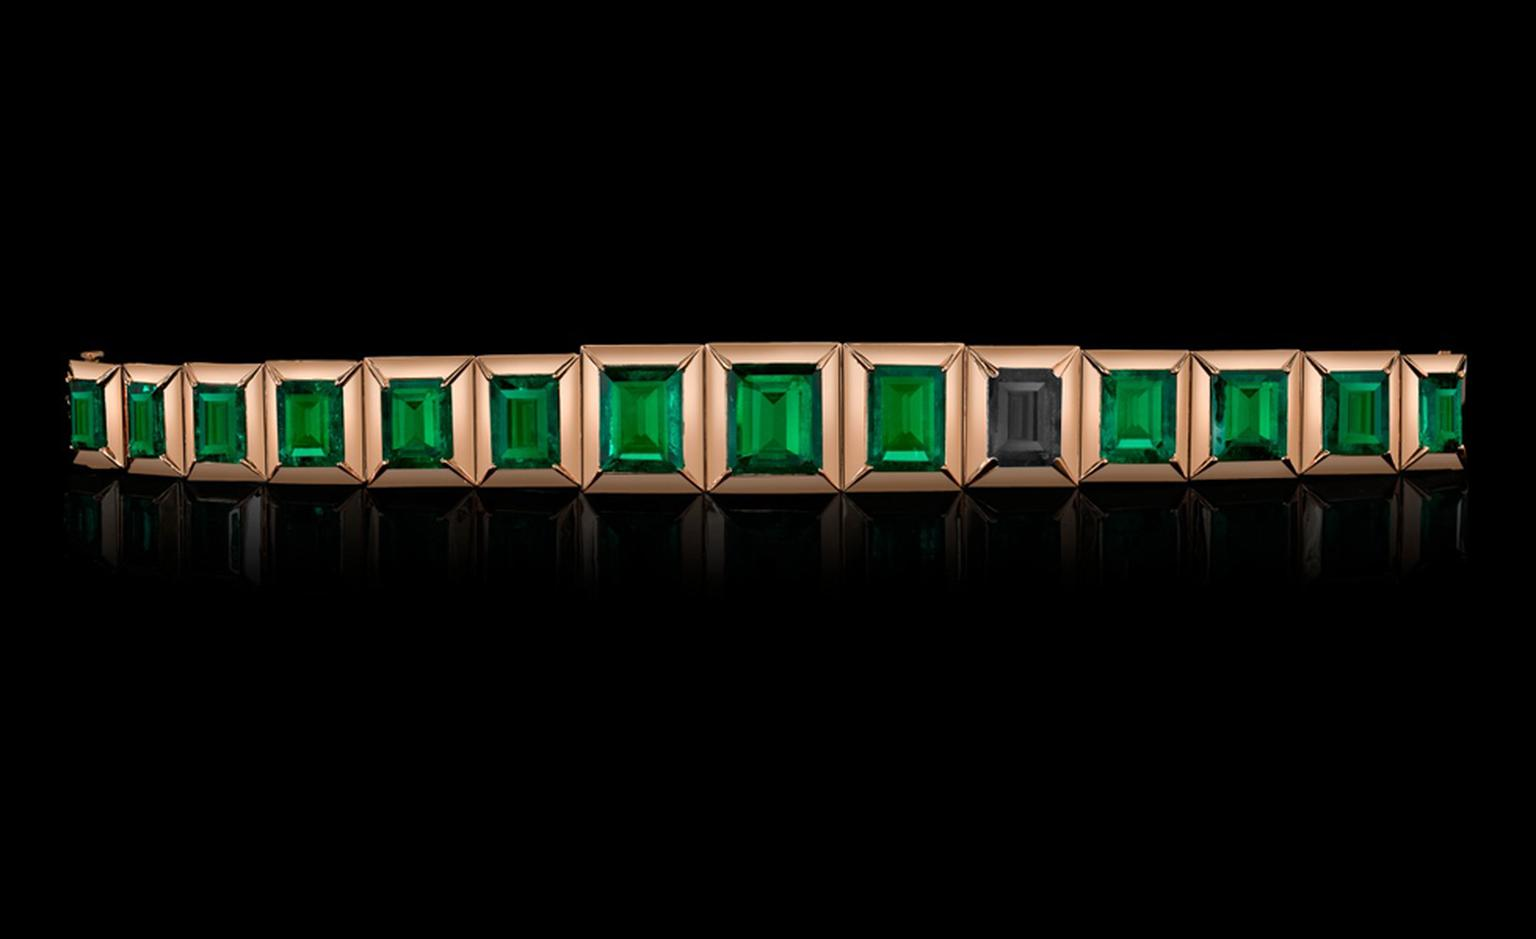 Style of Jolie Emerald Bracelet, a jewellery collection created by Angelina, the proceeds will benefit her charity The Education Partnership for Children of Conflict